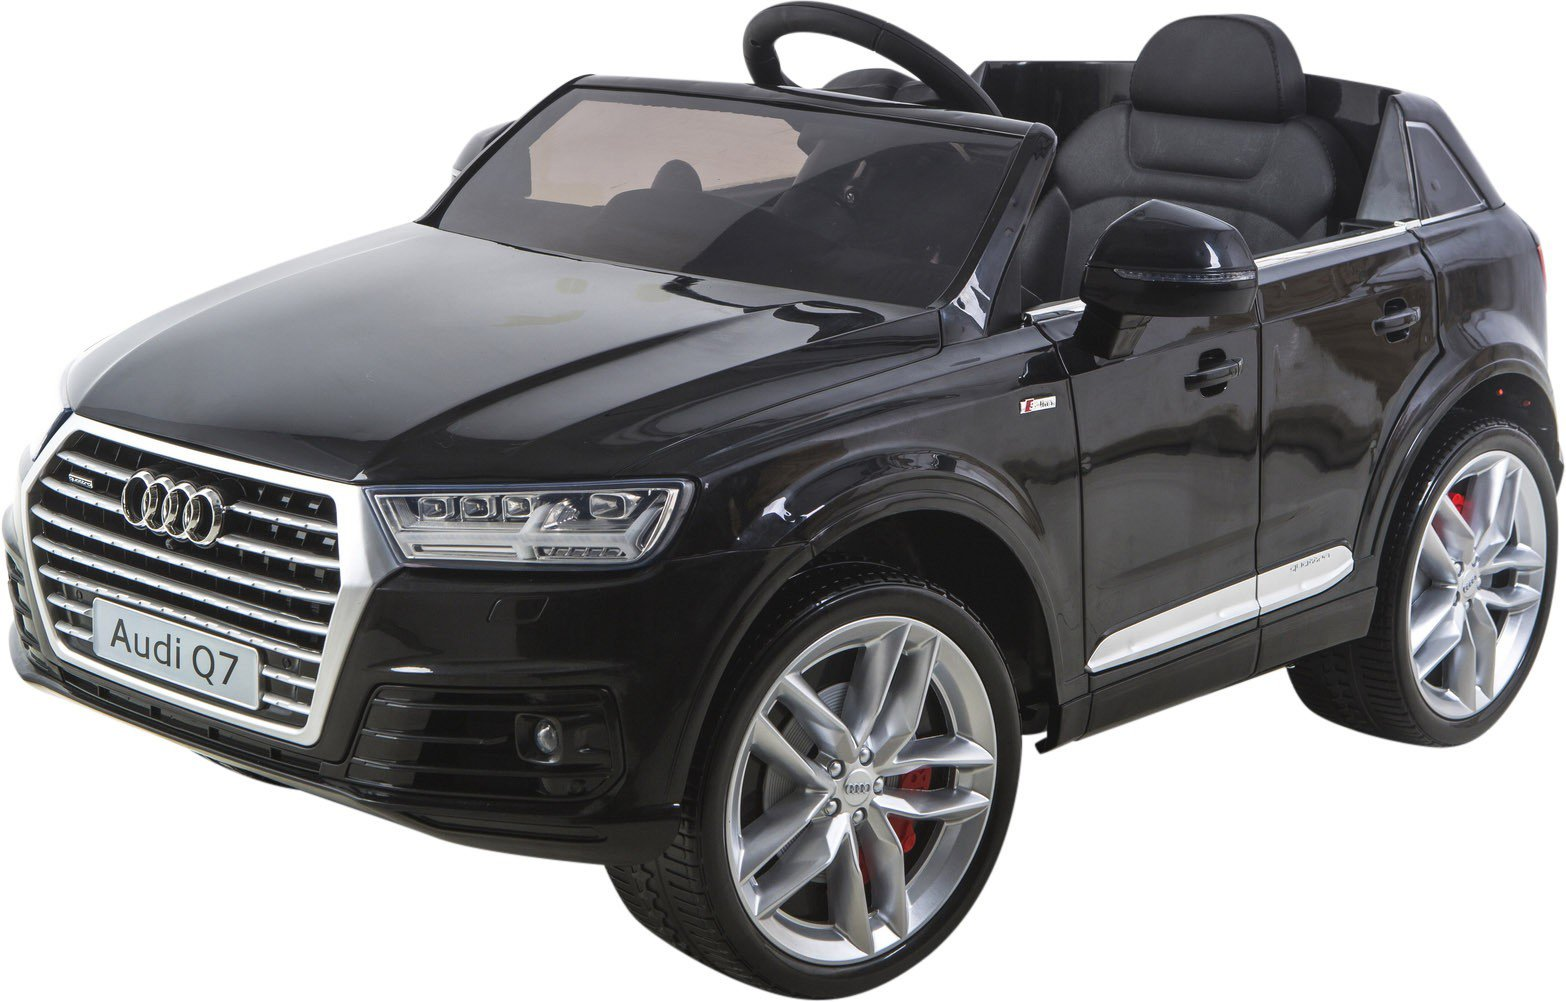 audi q7 4 2 tdi quattro 2017 model 12v kids electric car ebay. Black Bedroom Furniture Sets. Home Design Ideas